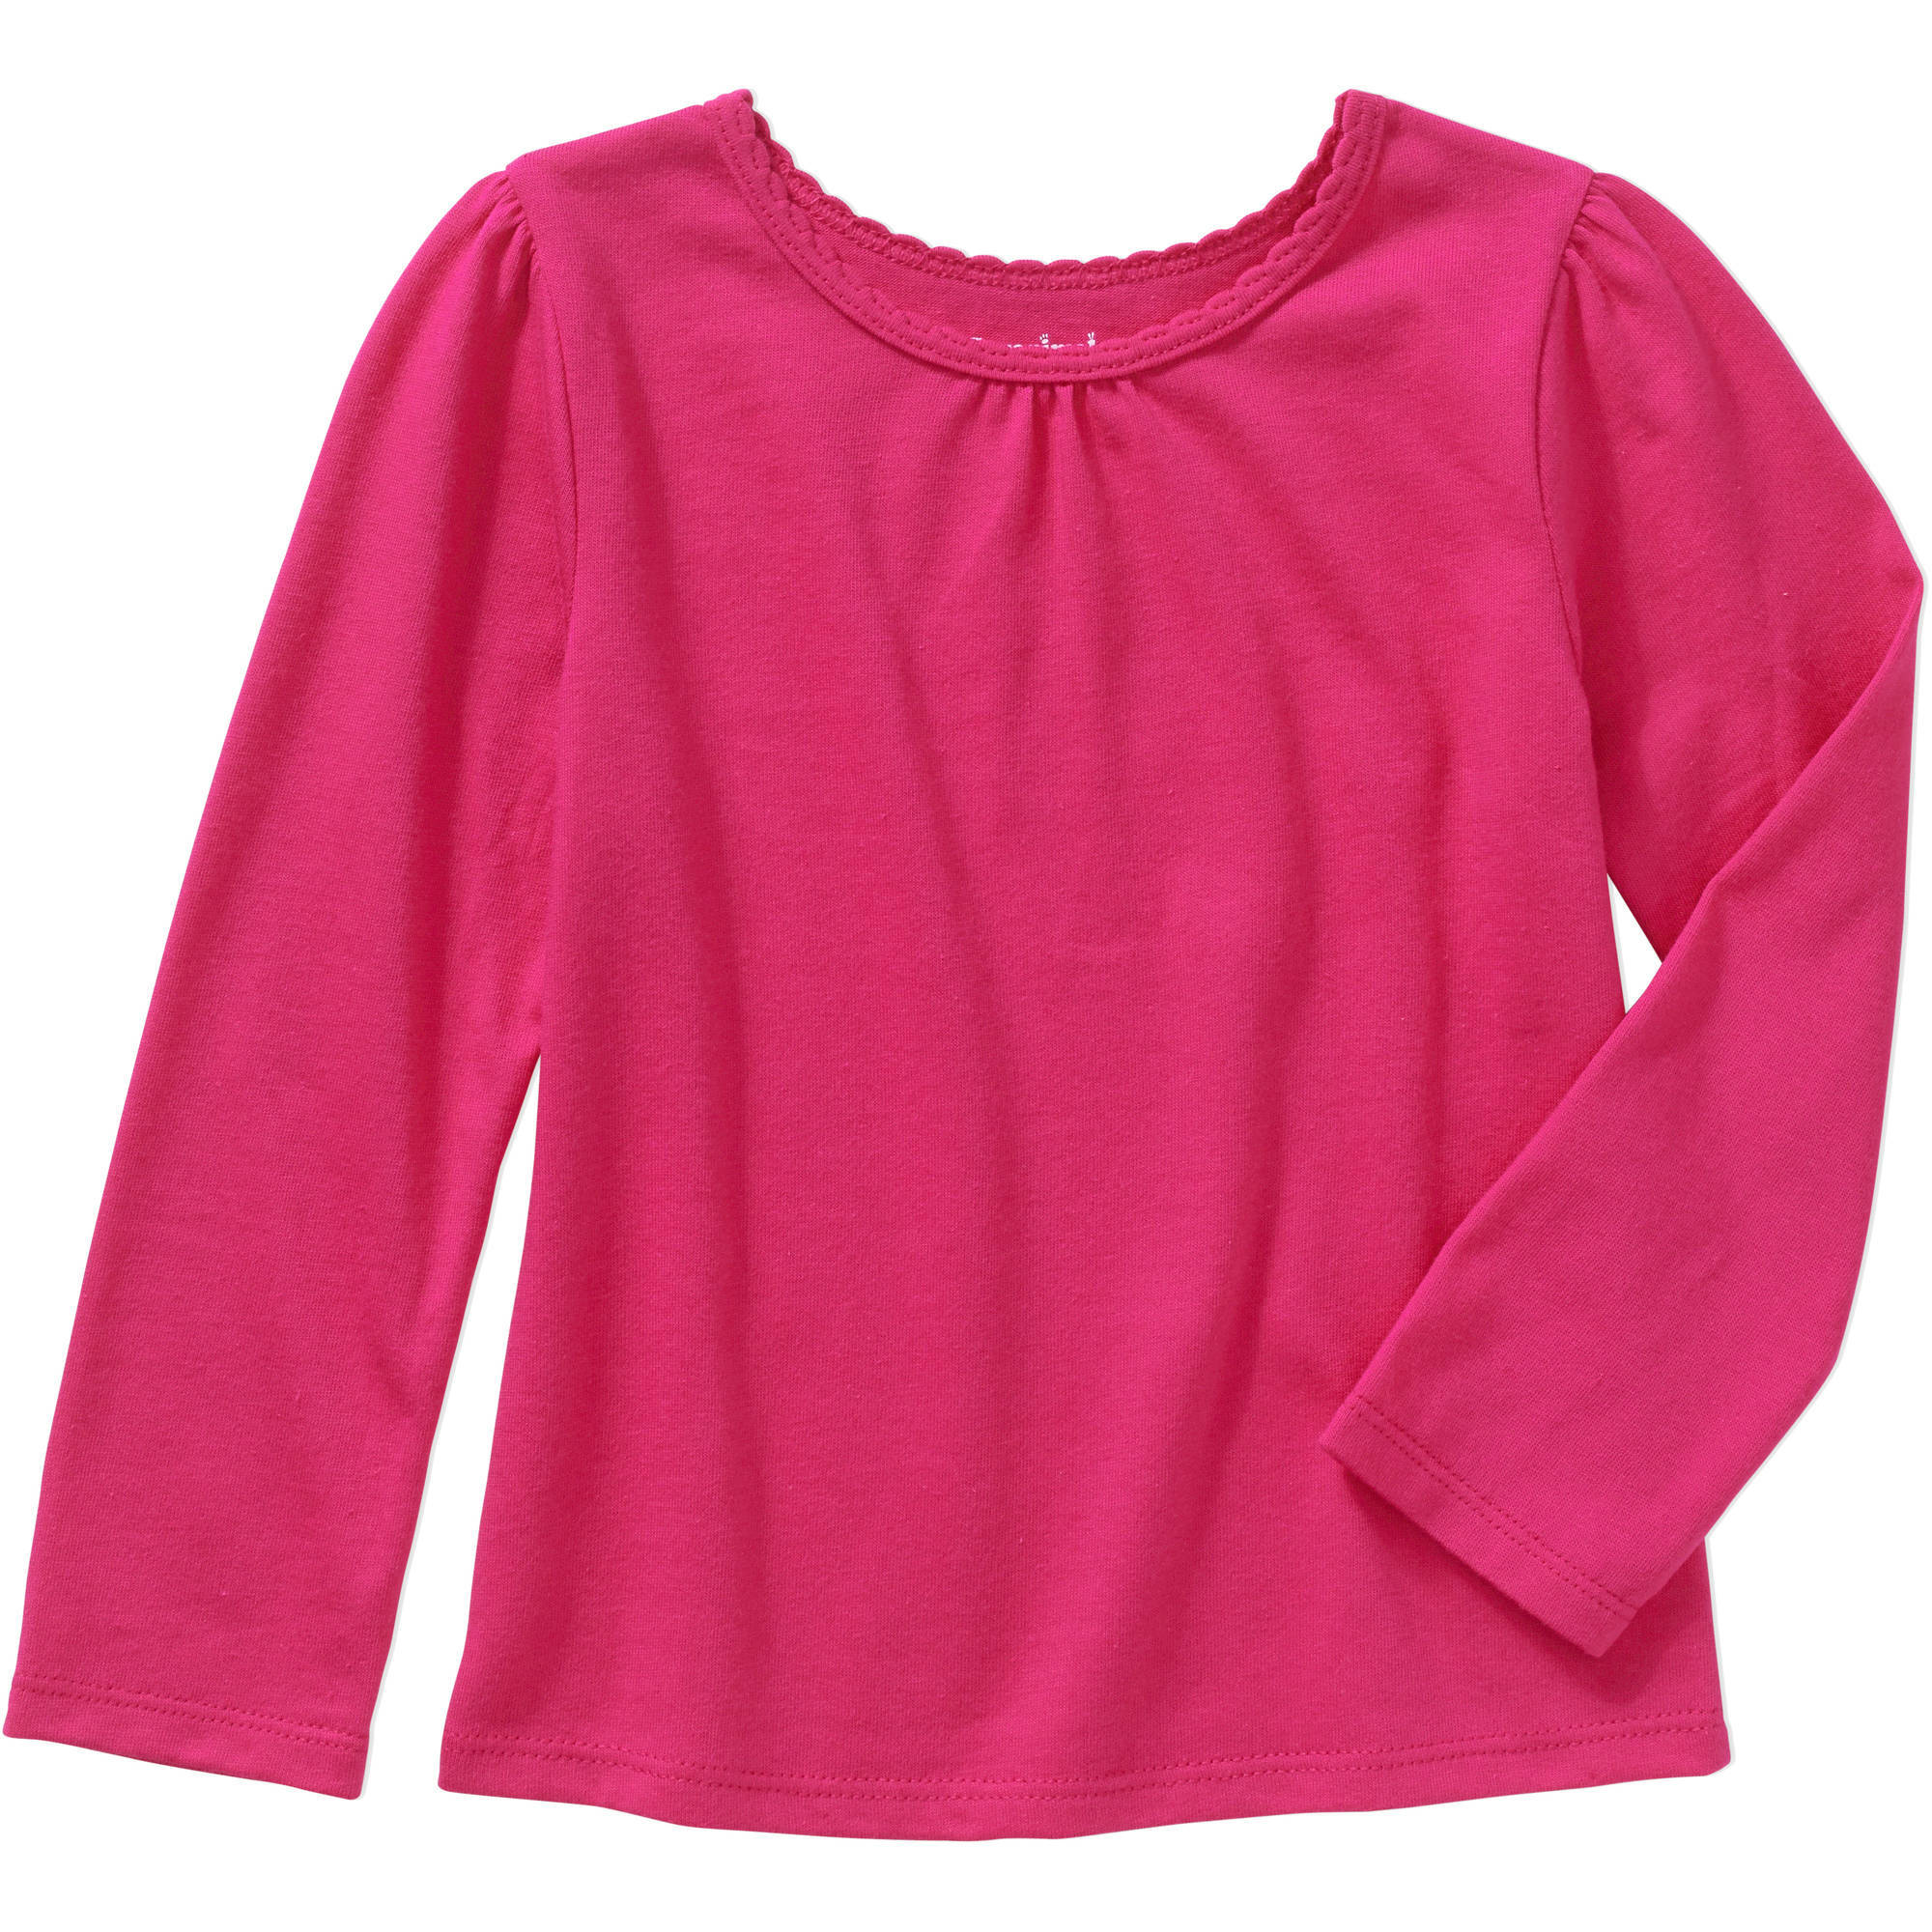 Garanimals Baby Toddler Girls' Long Sleeve Basic Tee